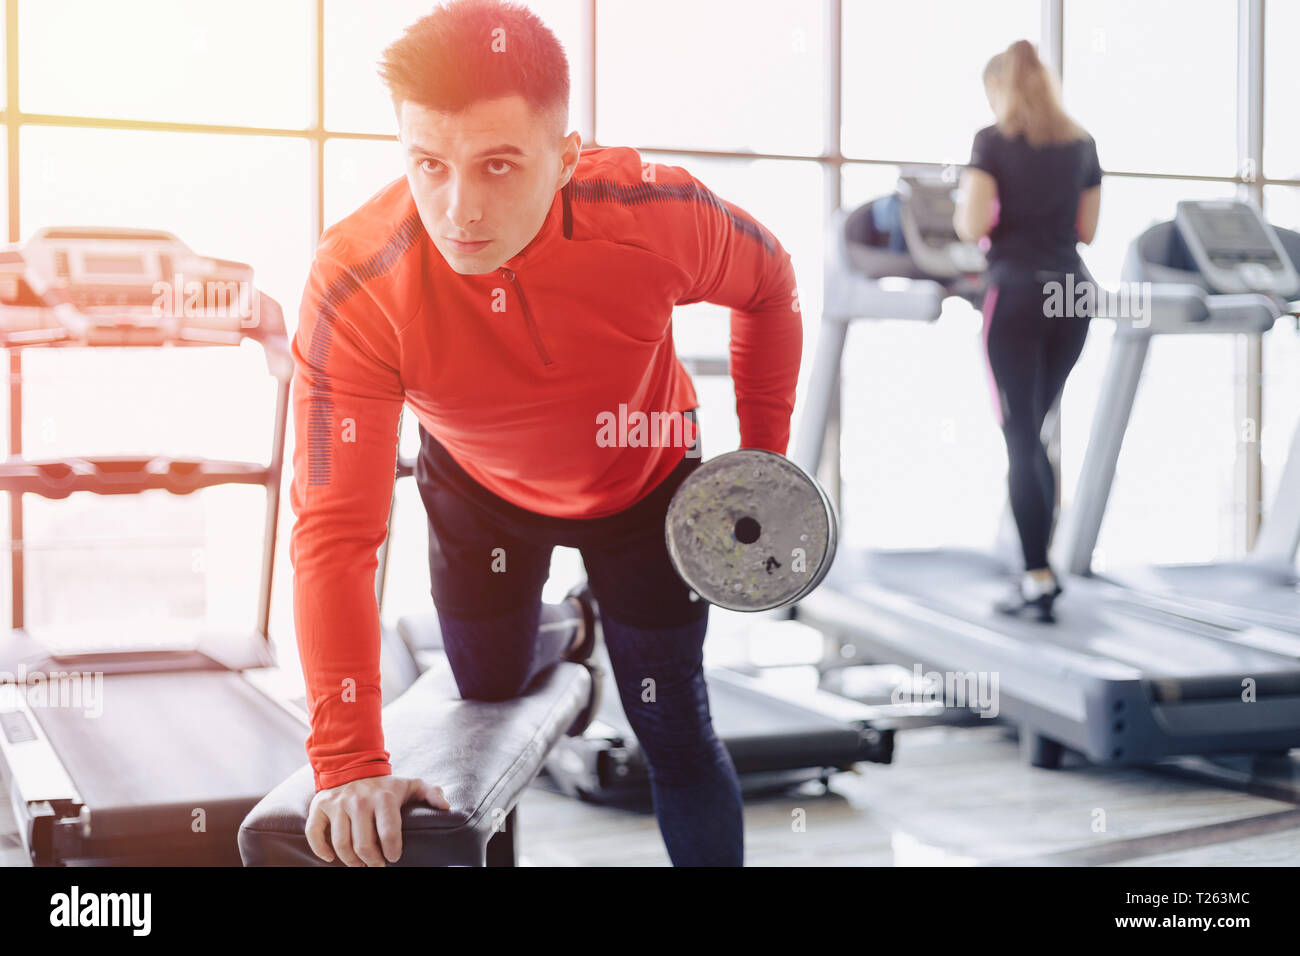 A man dumps triceps on the background of treadmills at the gym - Stock Image